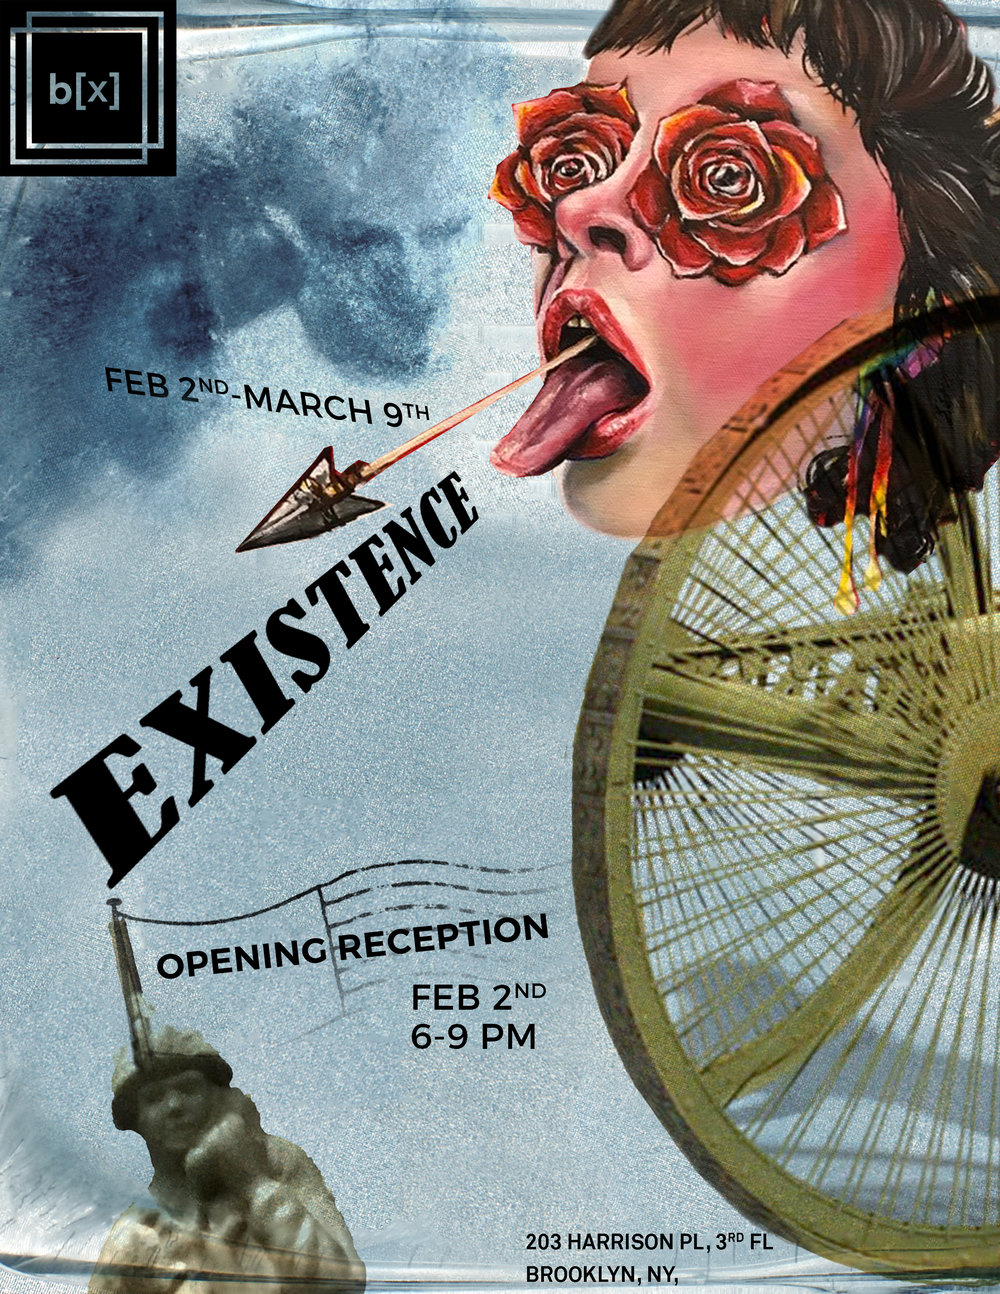 Existence February 2 - March 9 Opening reception: Friday, February 2, 6-9pm + How do you show your existence to the world? + What validates your existence? + Can you lose your existence? + Is death the end of existence? Artists: Rodrigo Moreira Alexis Price Negin Sharifzadeh